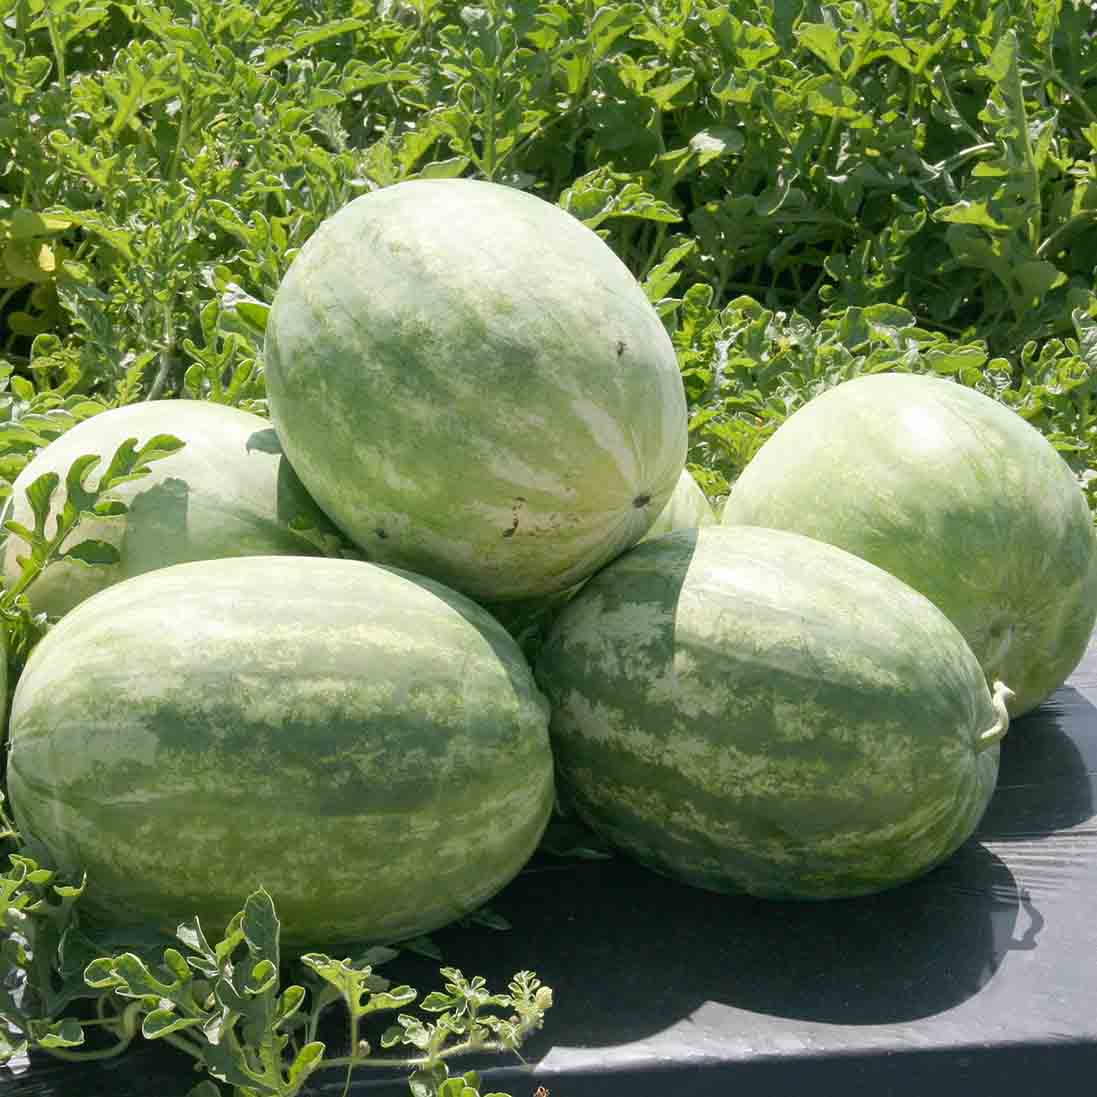 Georgia is a national leader in watermelon production, ranking second or third each year. The crop's farm gate value was $180 million in 2019.